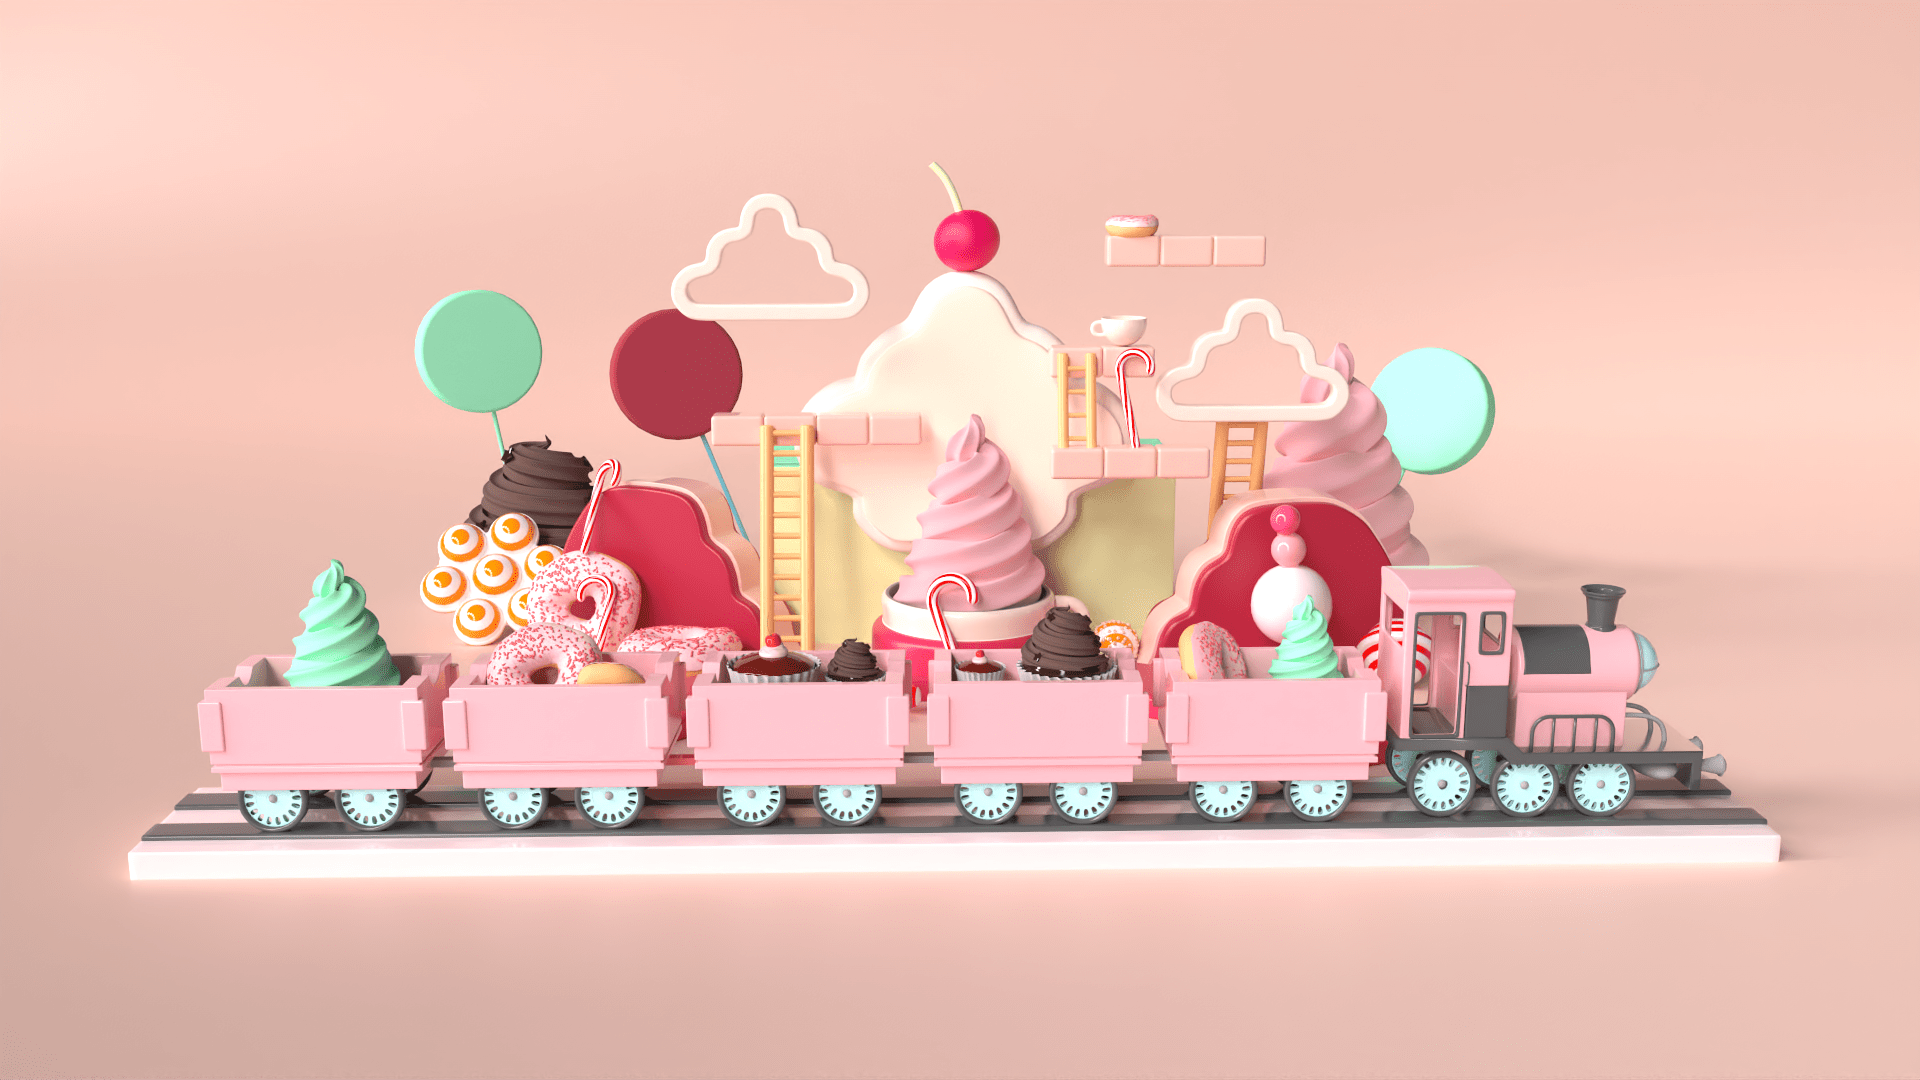 Candy_Train_Render_02